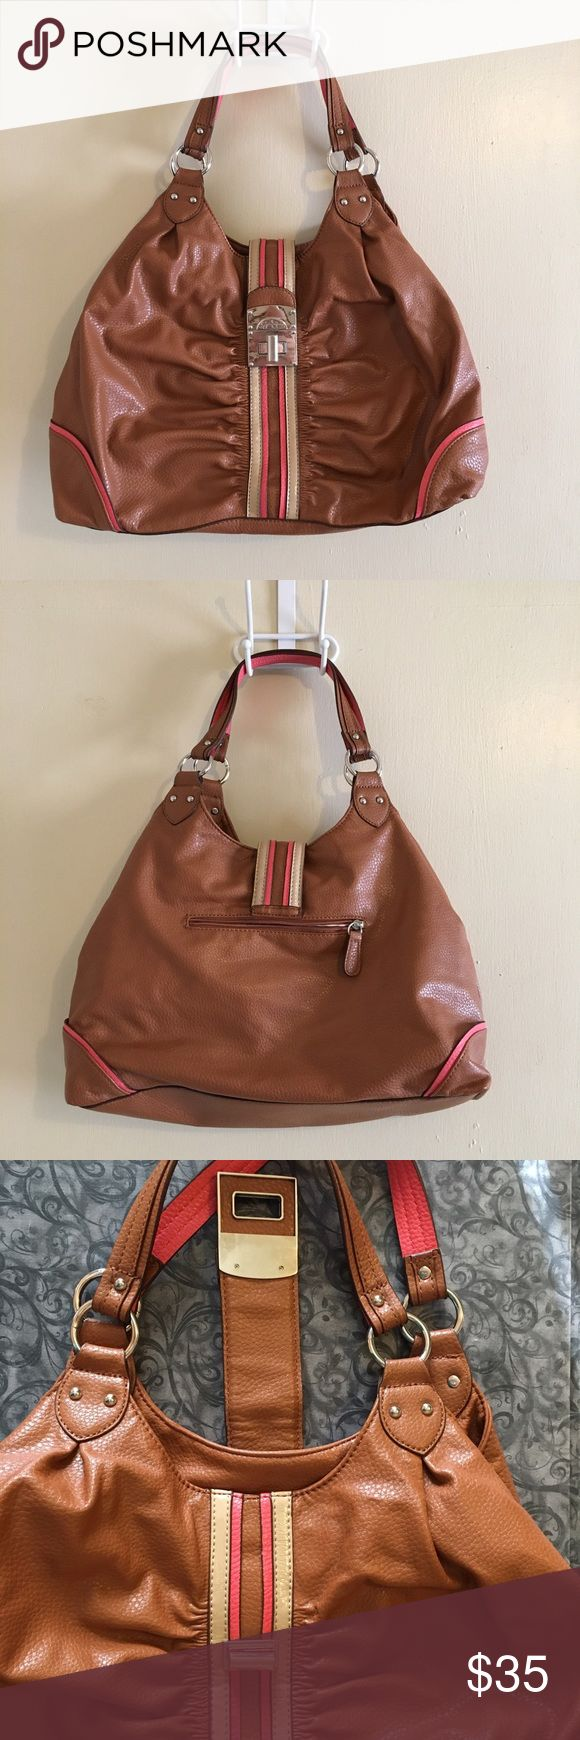 """Jessica Simpson large brown shoulder bag Jessica Simpson large shoulder bag. Brown color with pink & tan/cream accents. Silver hardware. Inside zippered pouch and slip pocket. One large zipper area in the center. Two inner straps make a snap closure (see photo). Bag closes at the top with a long flap and turnlock closure featuring """"Jessica Simpson"""" written in the plate. This is a reposh. This bag is perfect but it's not a crossbody, which is it's only downfall. On the fence about selling…"""